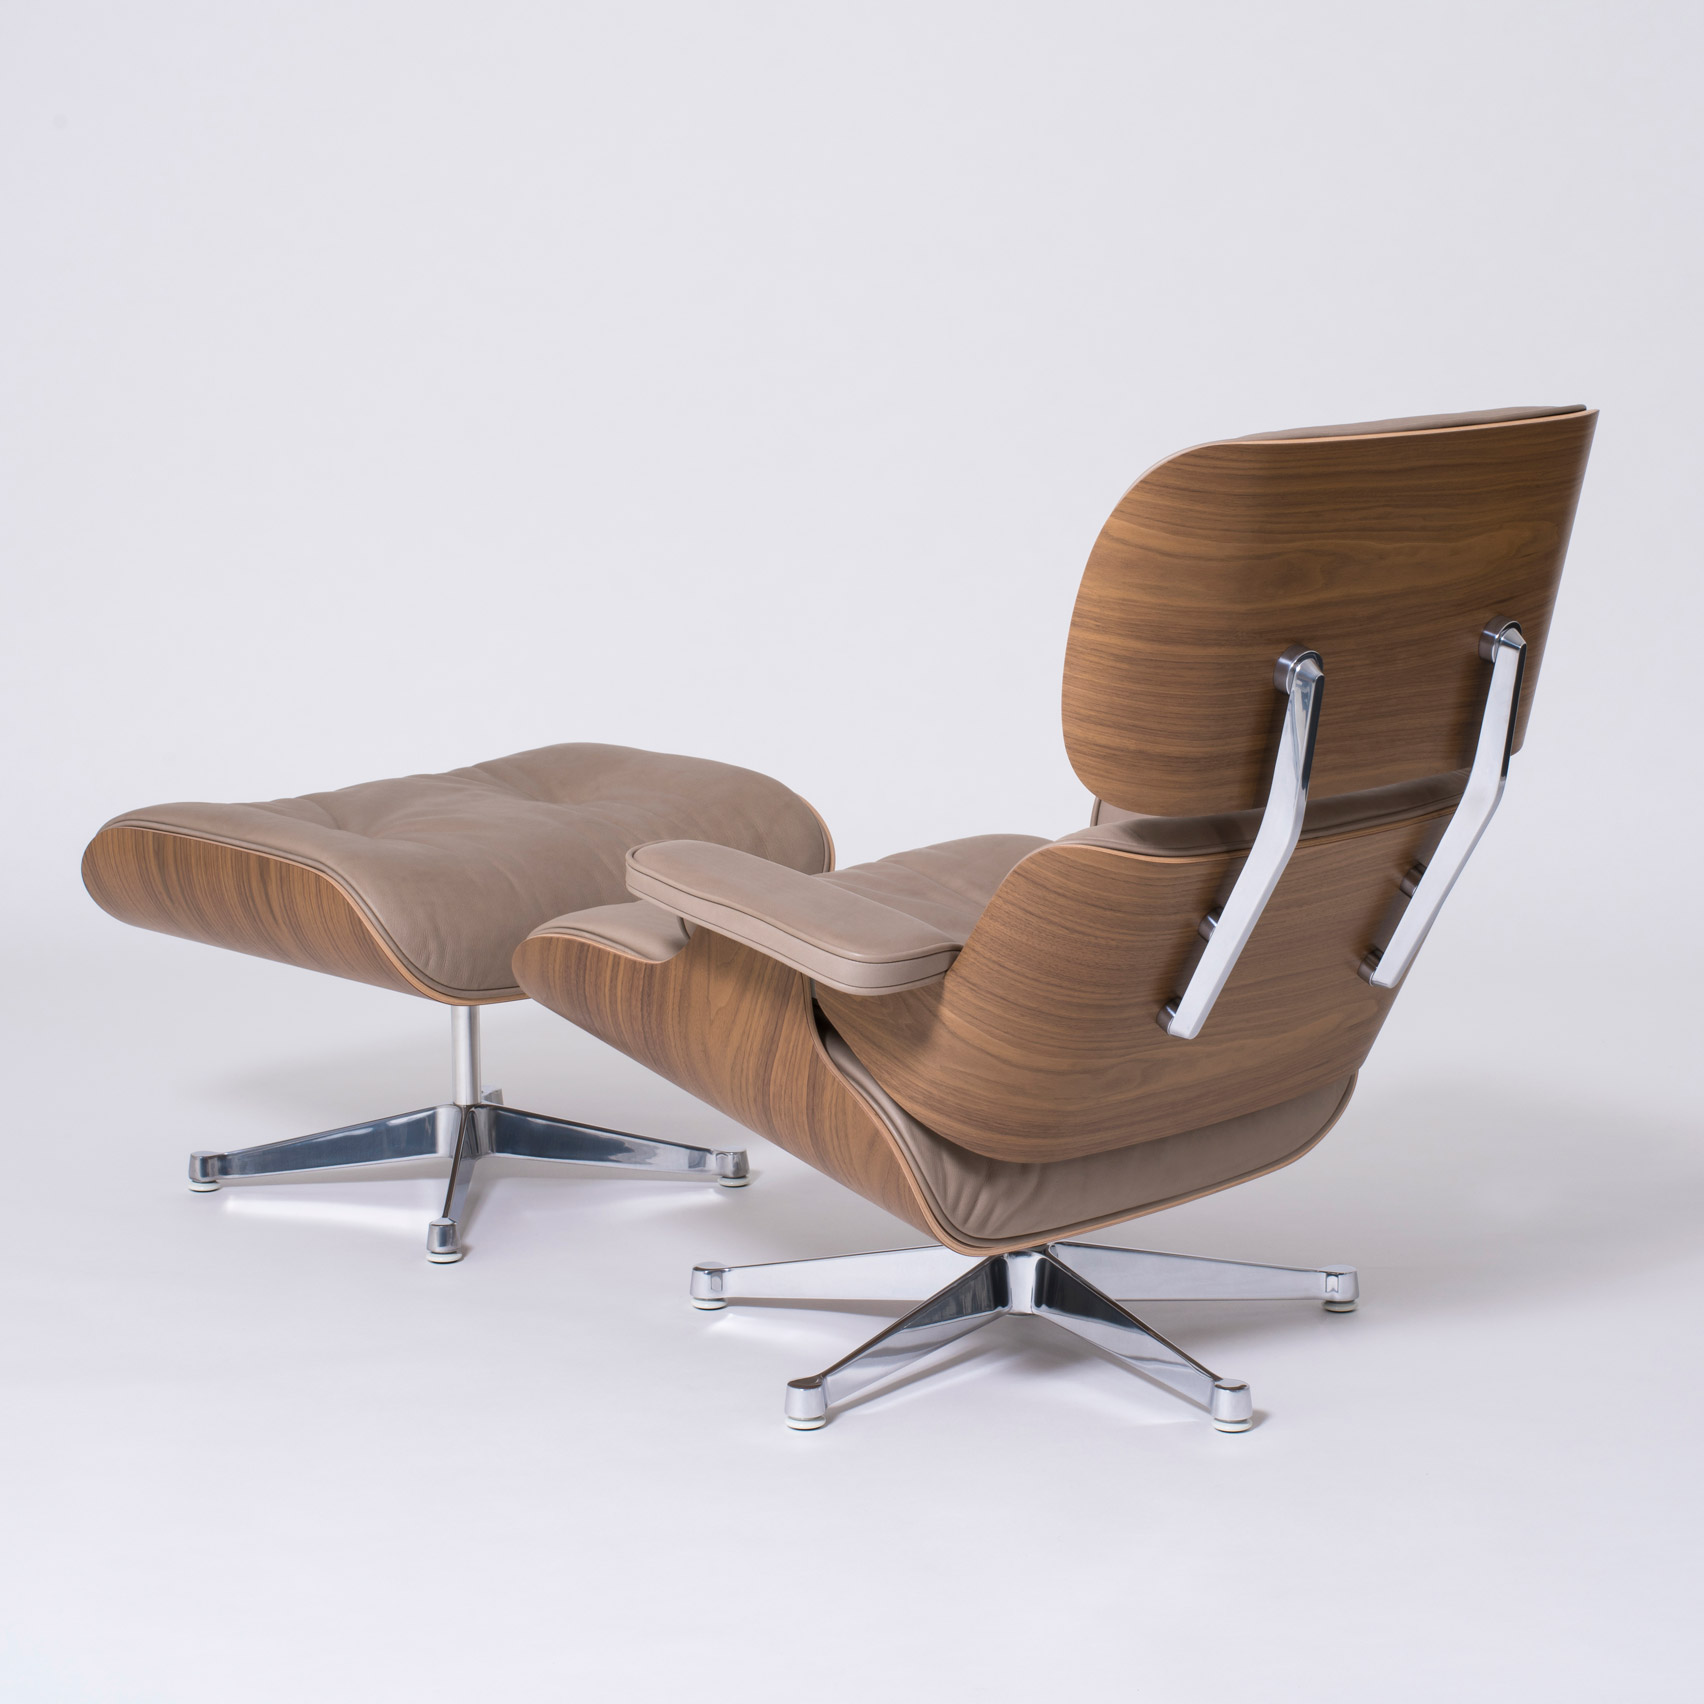 Chaise Design Eames The Conran Shop Launches Limited Edition Eames Lounge Chair In New